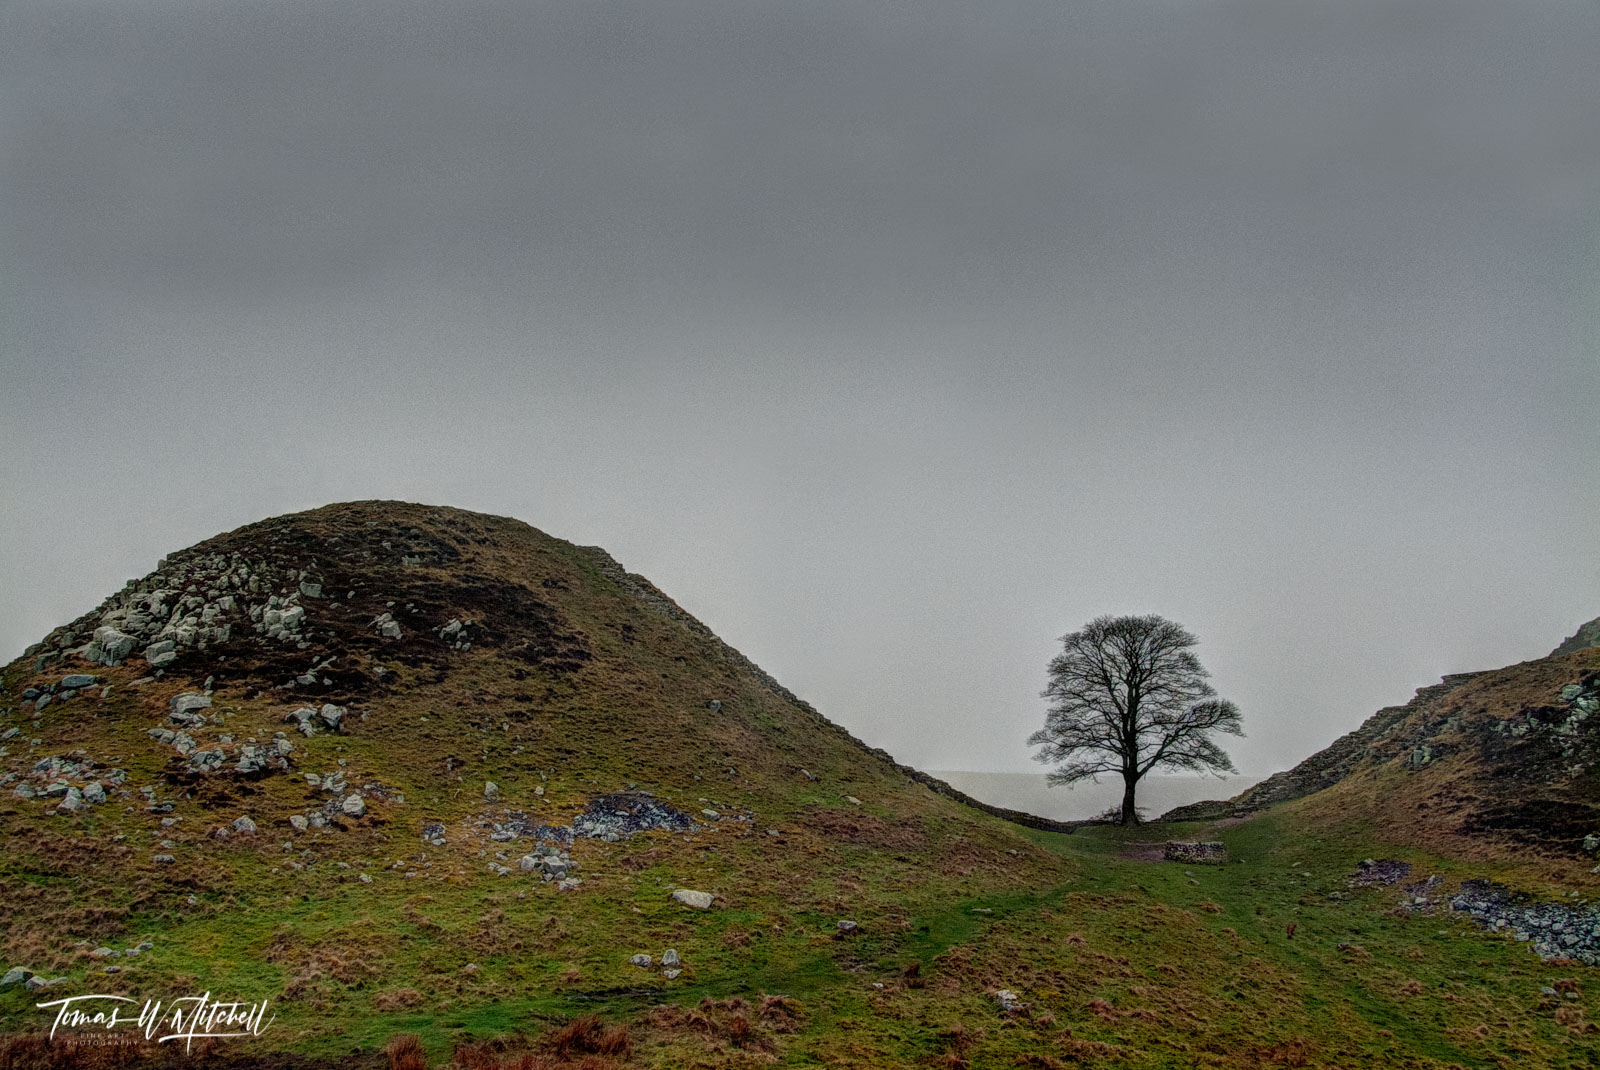 Limited Edition of 50 Museum Grade, Fine Art Prints. Photographing Sycamore Gap at Hadrian's Wall was a highlight of this trip...